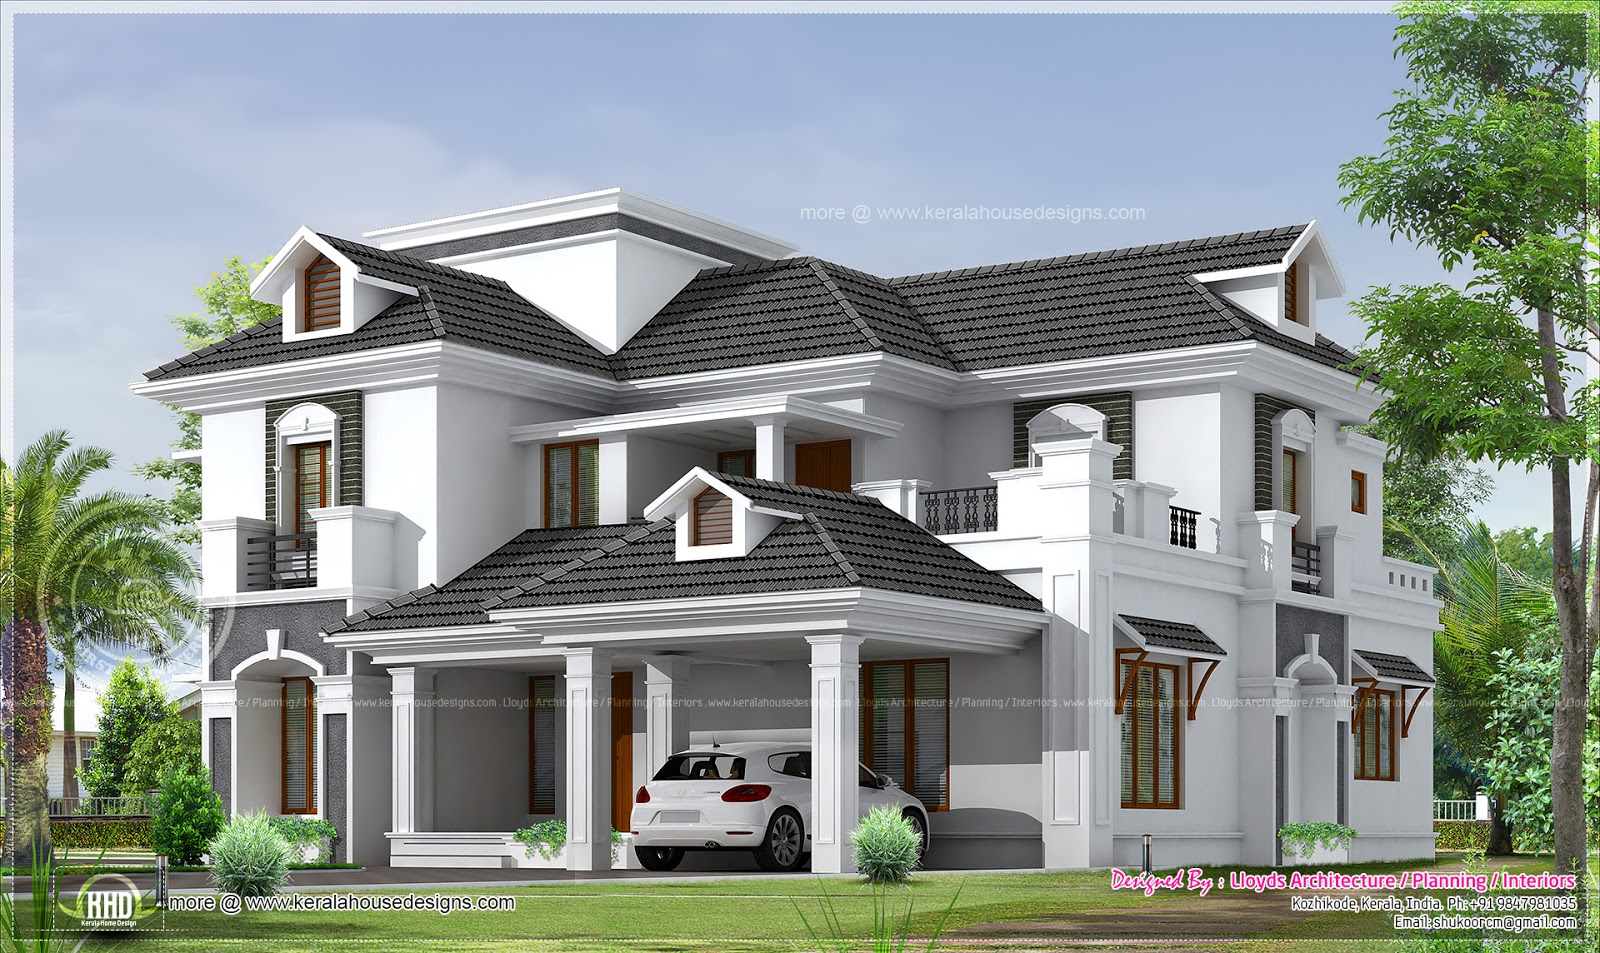 4 Bedroom House Design See Floor Plans